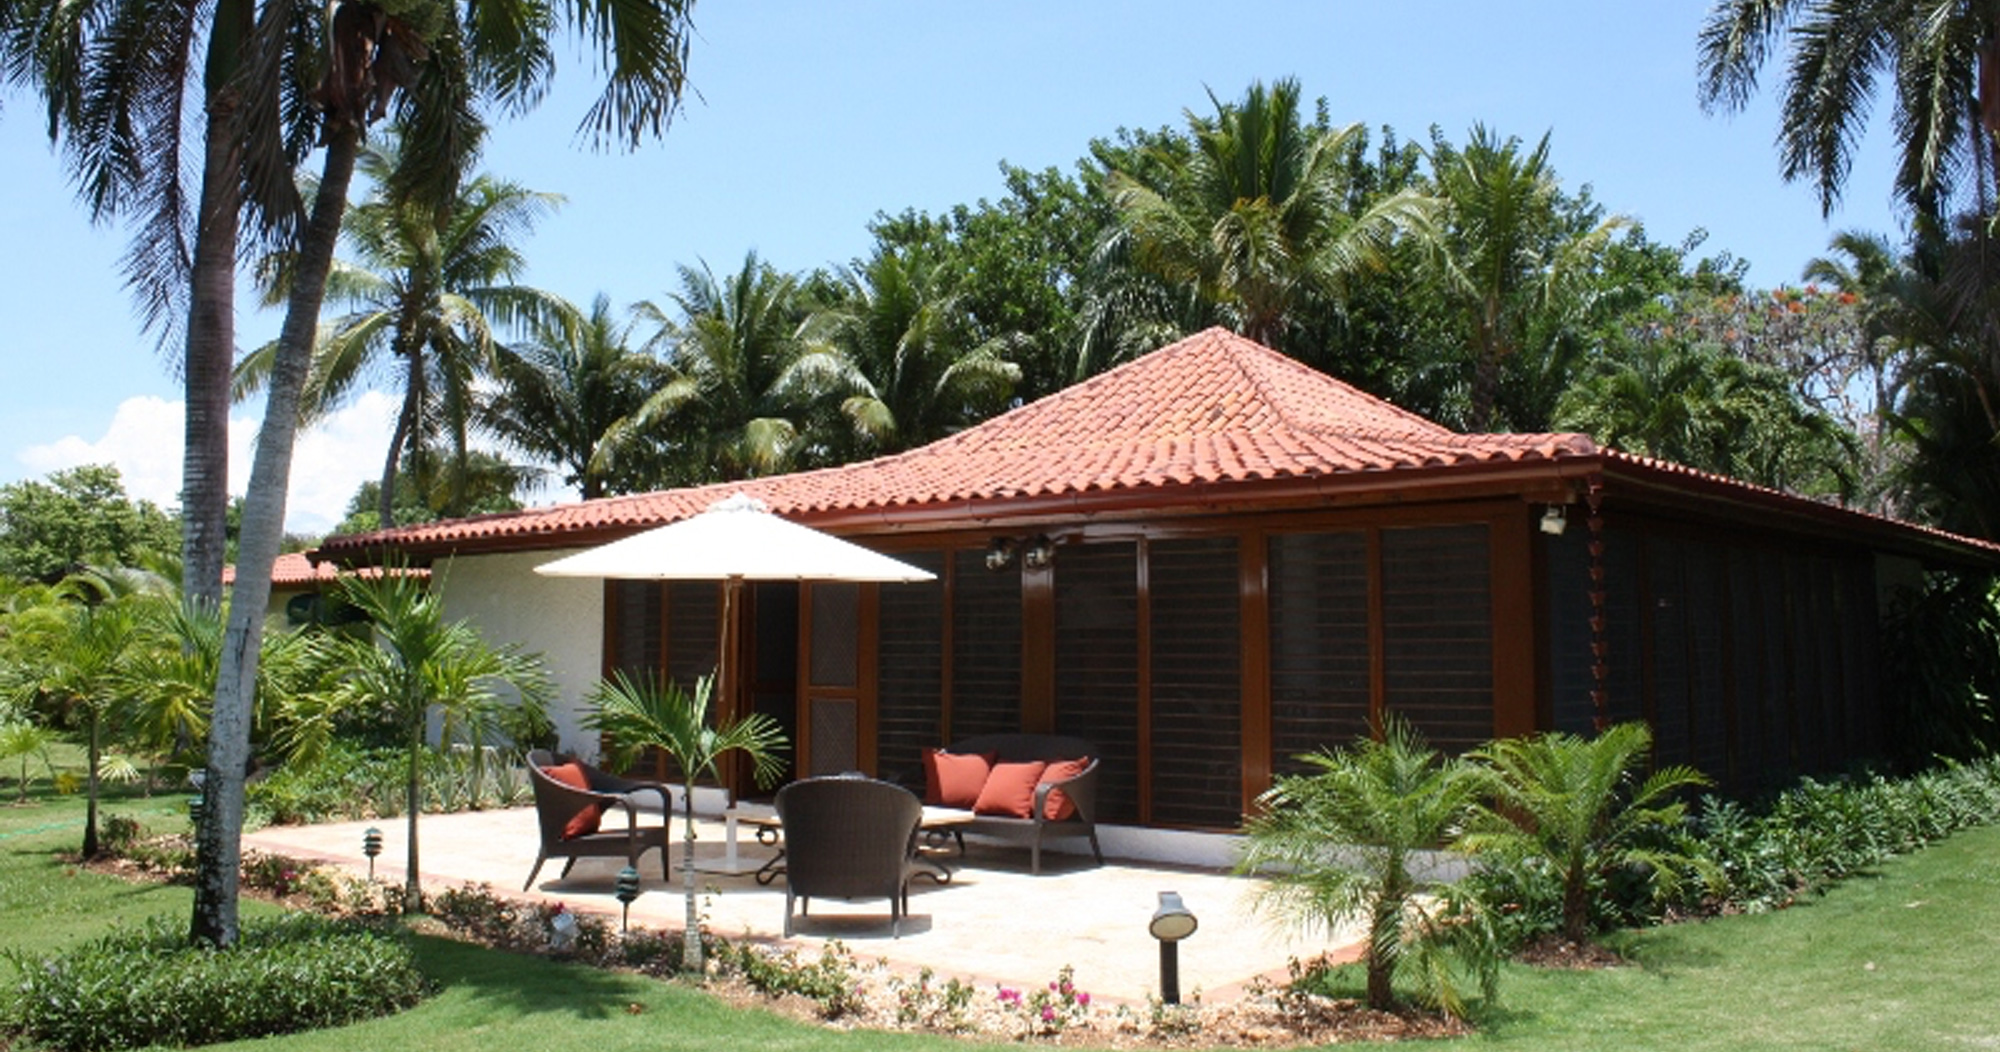 Casa de campo golf villa lilly real estate tropical for Casa de campo villas